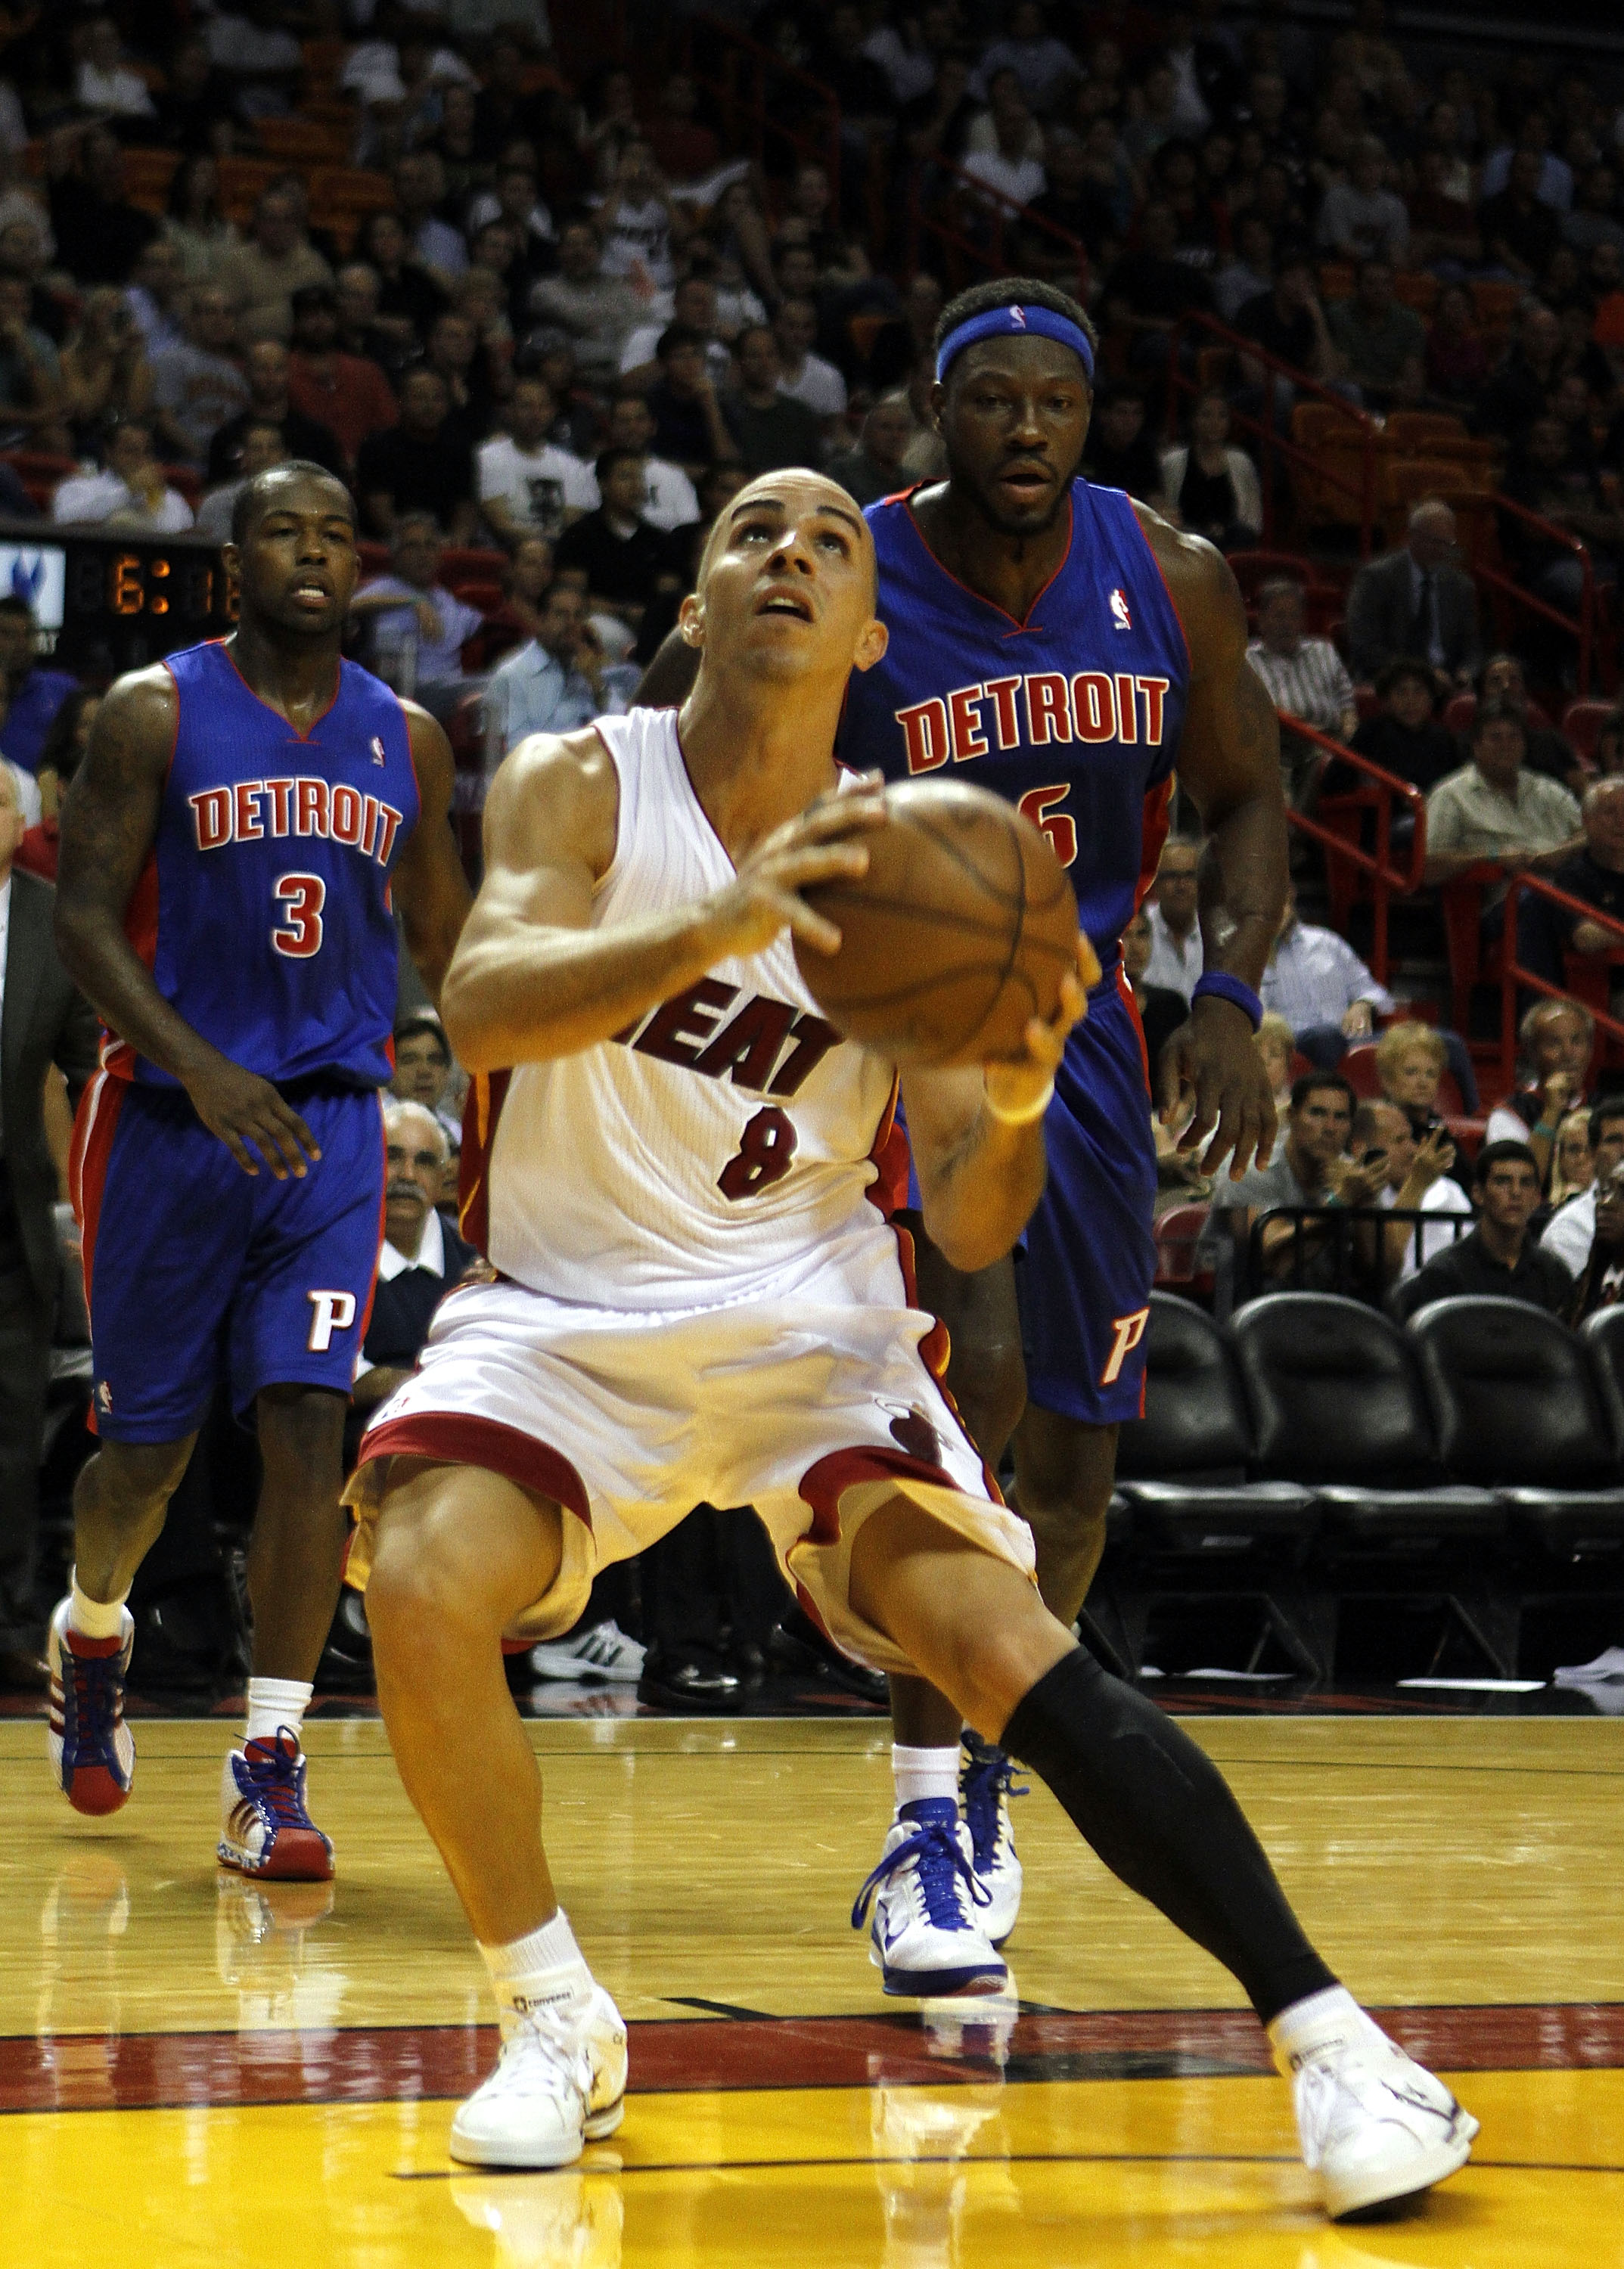 MIAMI - OCTOBER 05:  Guard Carlos Arroyo #8 on the court against the Detroit Pistons on October 5, 2010 in Miami, Florida.  NOTE TO USER: User expressly acknowledges and agrees that, by downloading and or using this photograph, User is consenting to the t